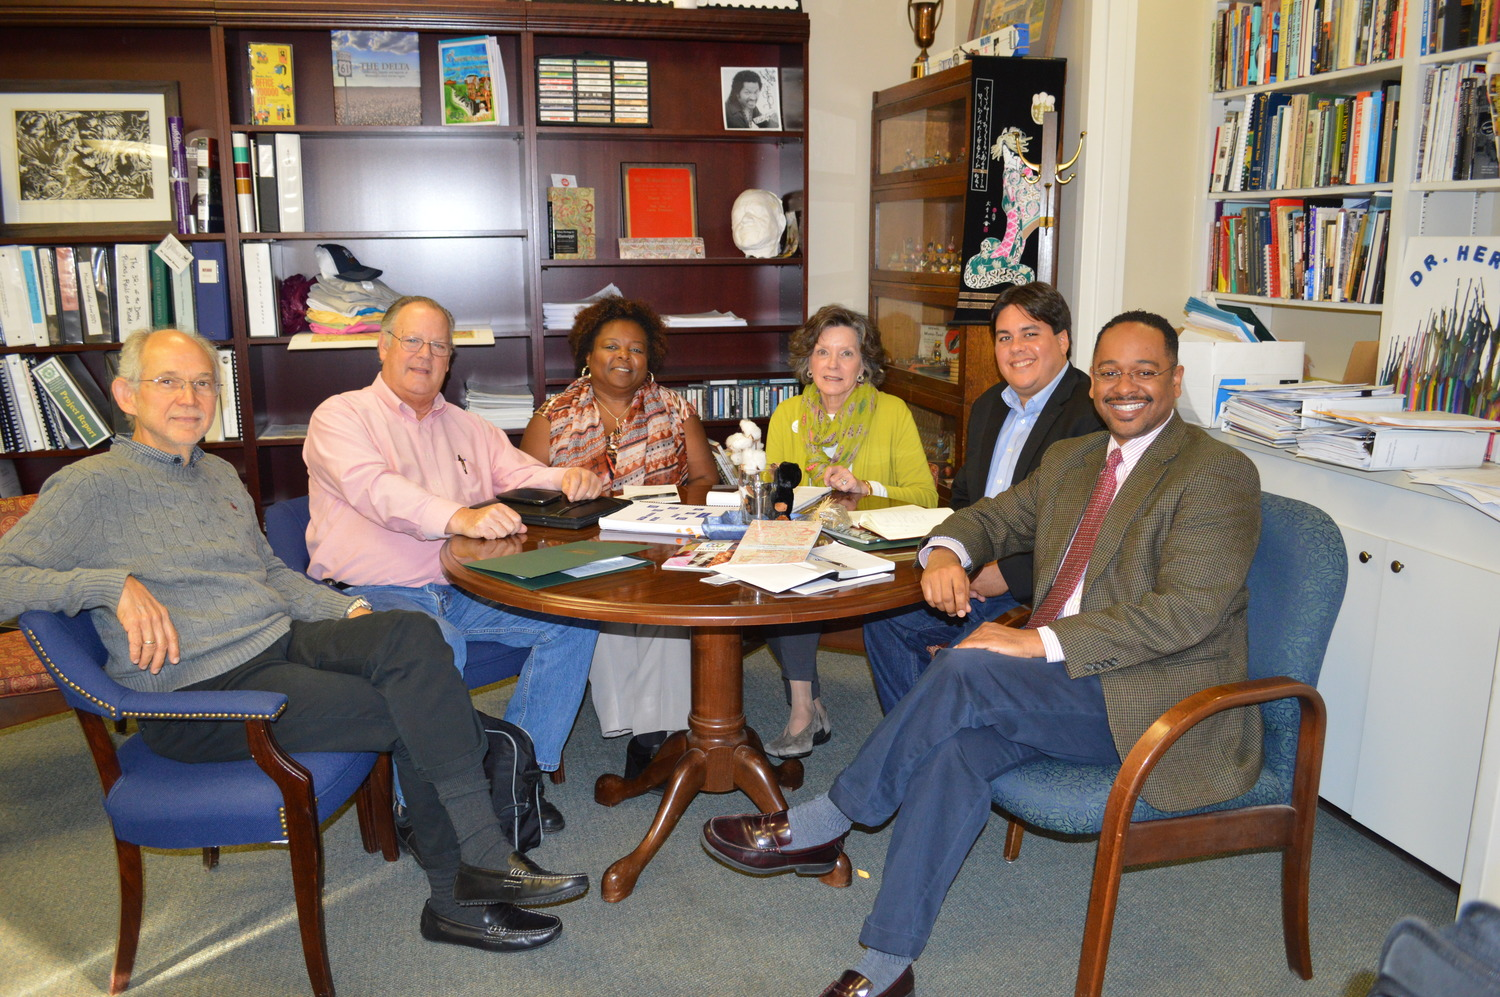 The Delta Center for Culture and Learning staff members Dr. Rolando Herts (right) and Lee Aylward (third from right) recently met with representatives from PathStone Puerto Rico Rural Innovation Fund and Mississippi Action for Community Education, Inc. of Greenville.